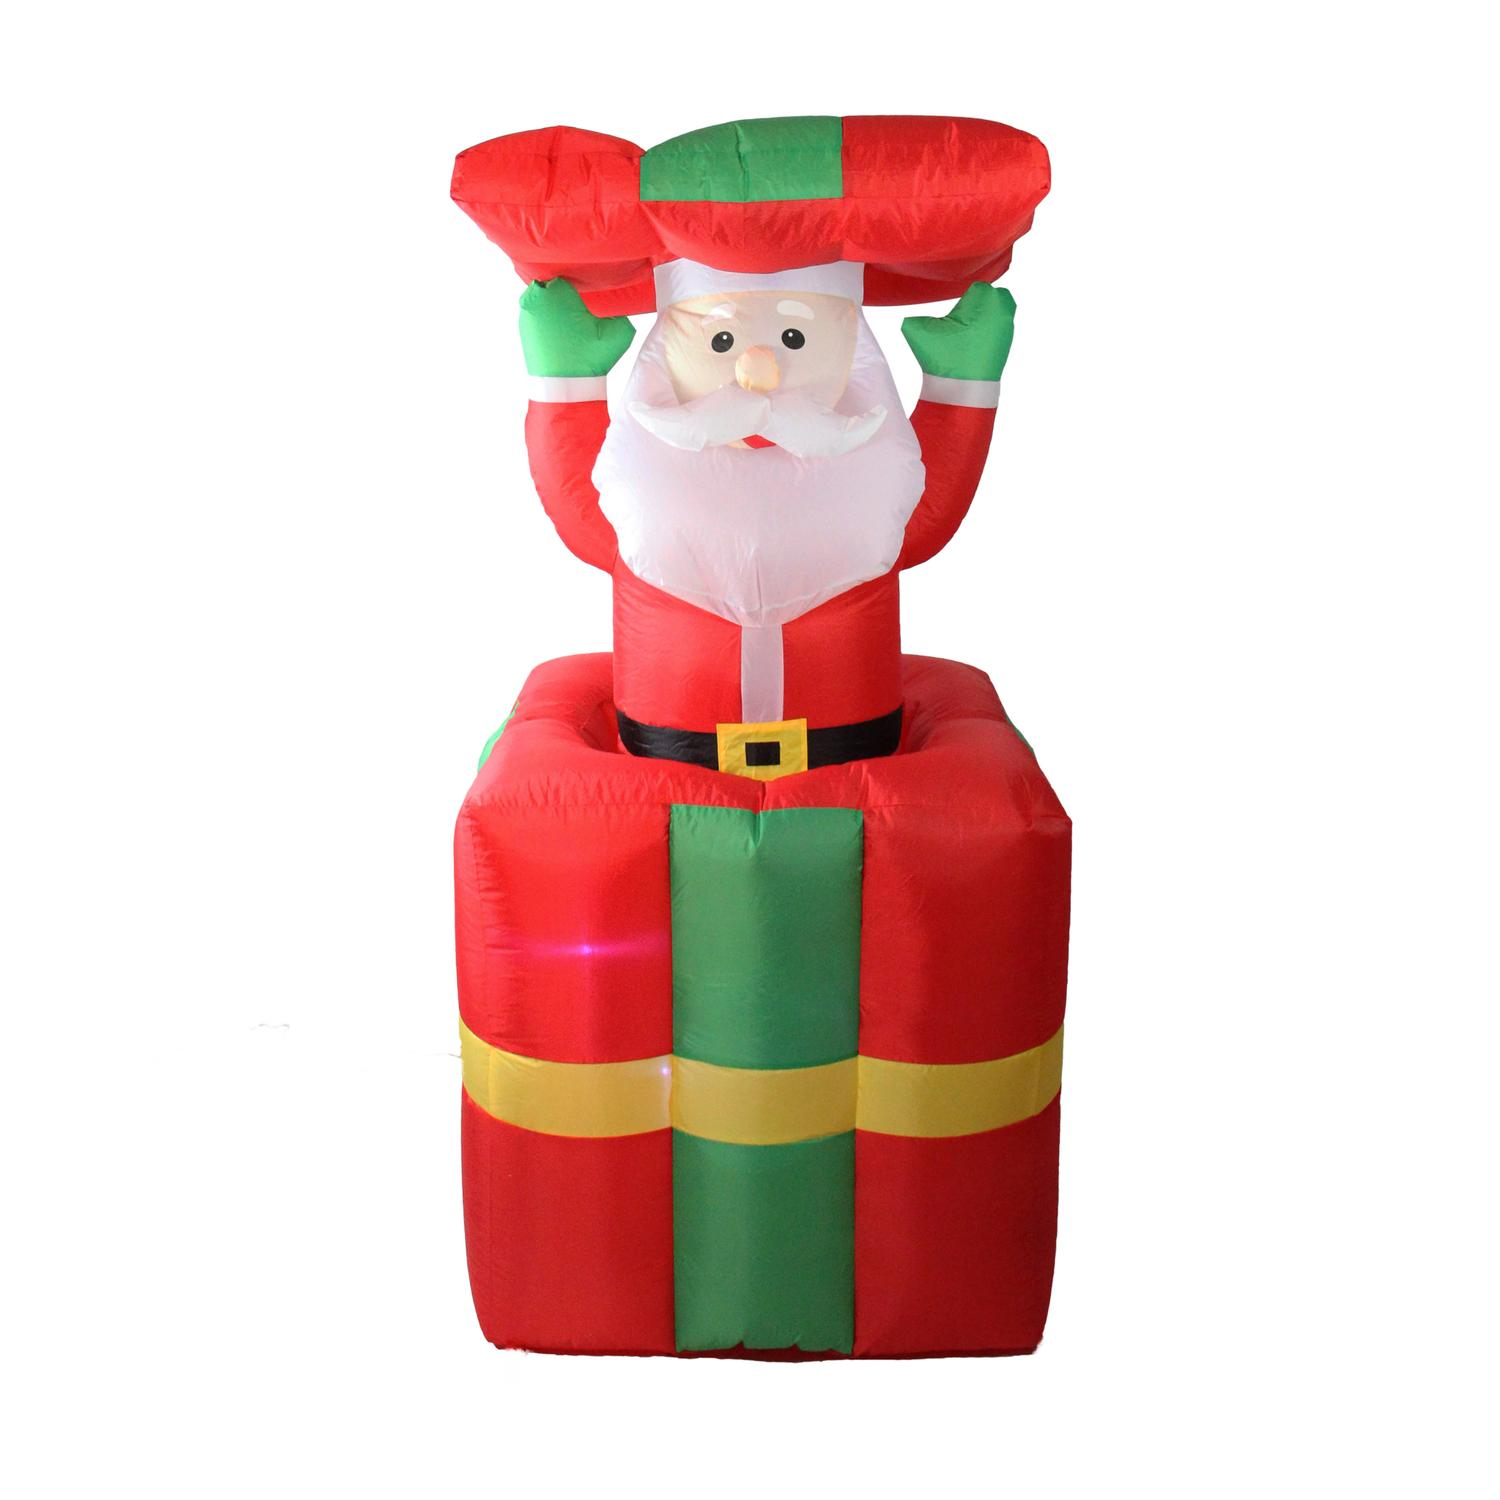 Lb International 5' Lighted Inflatable Pop Up Santa Claus in Gift Box Christmas Yard Art Decoration